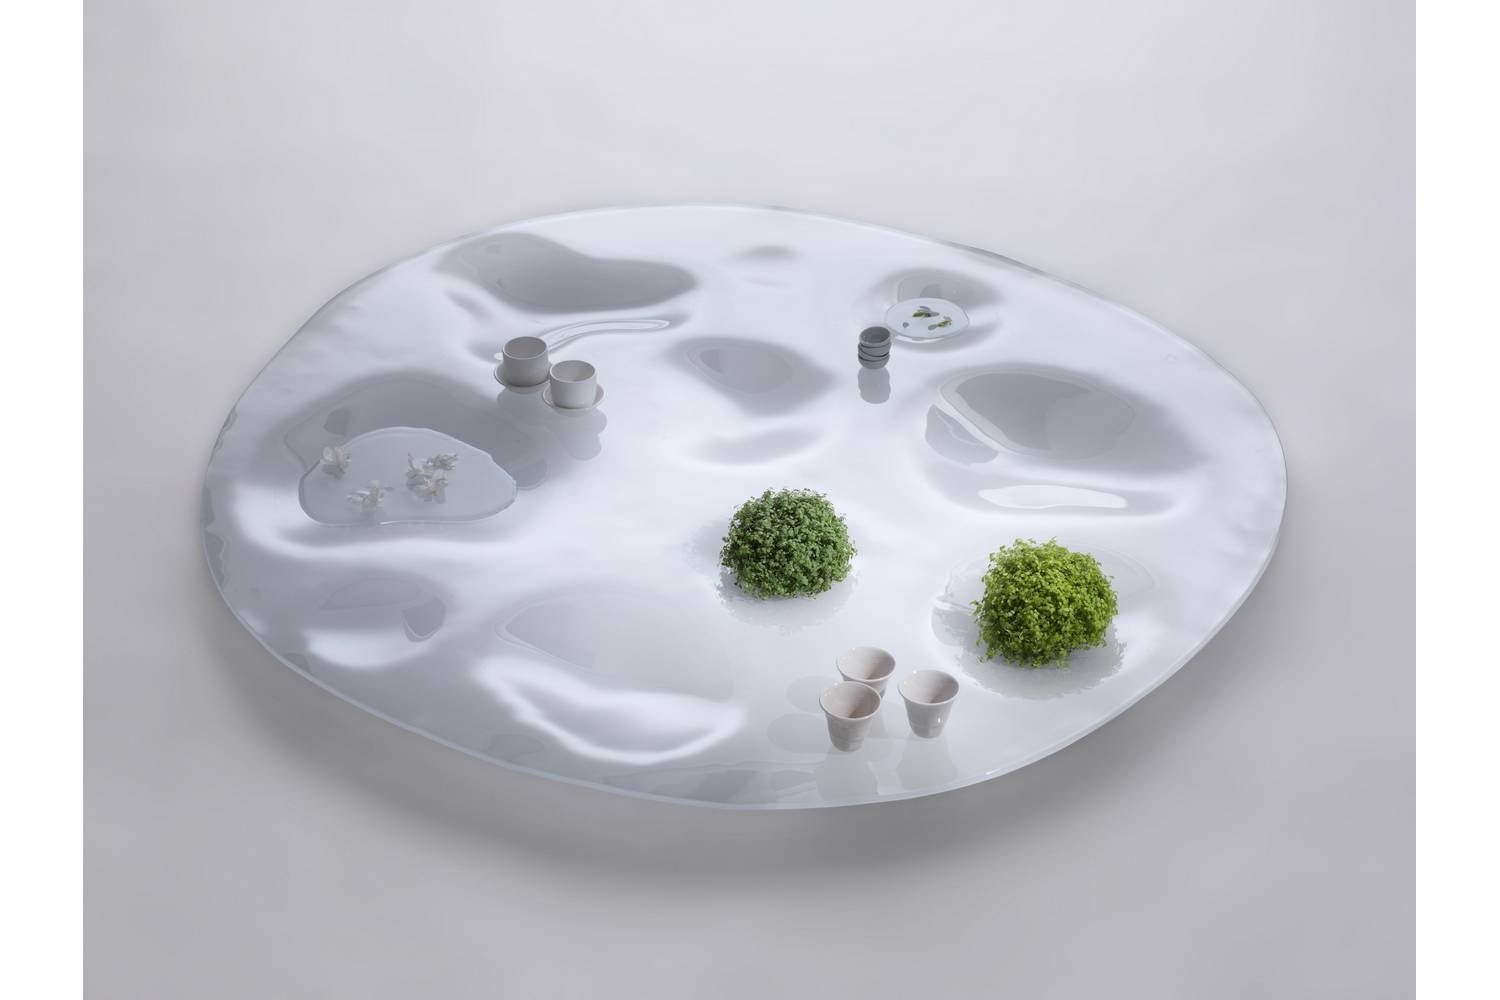 Garden Plate Coffee Table by Junya Ishigami for Living Divani